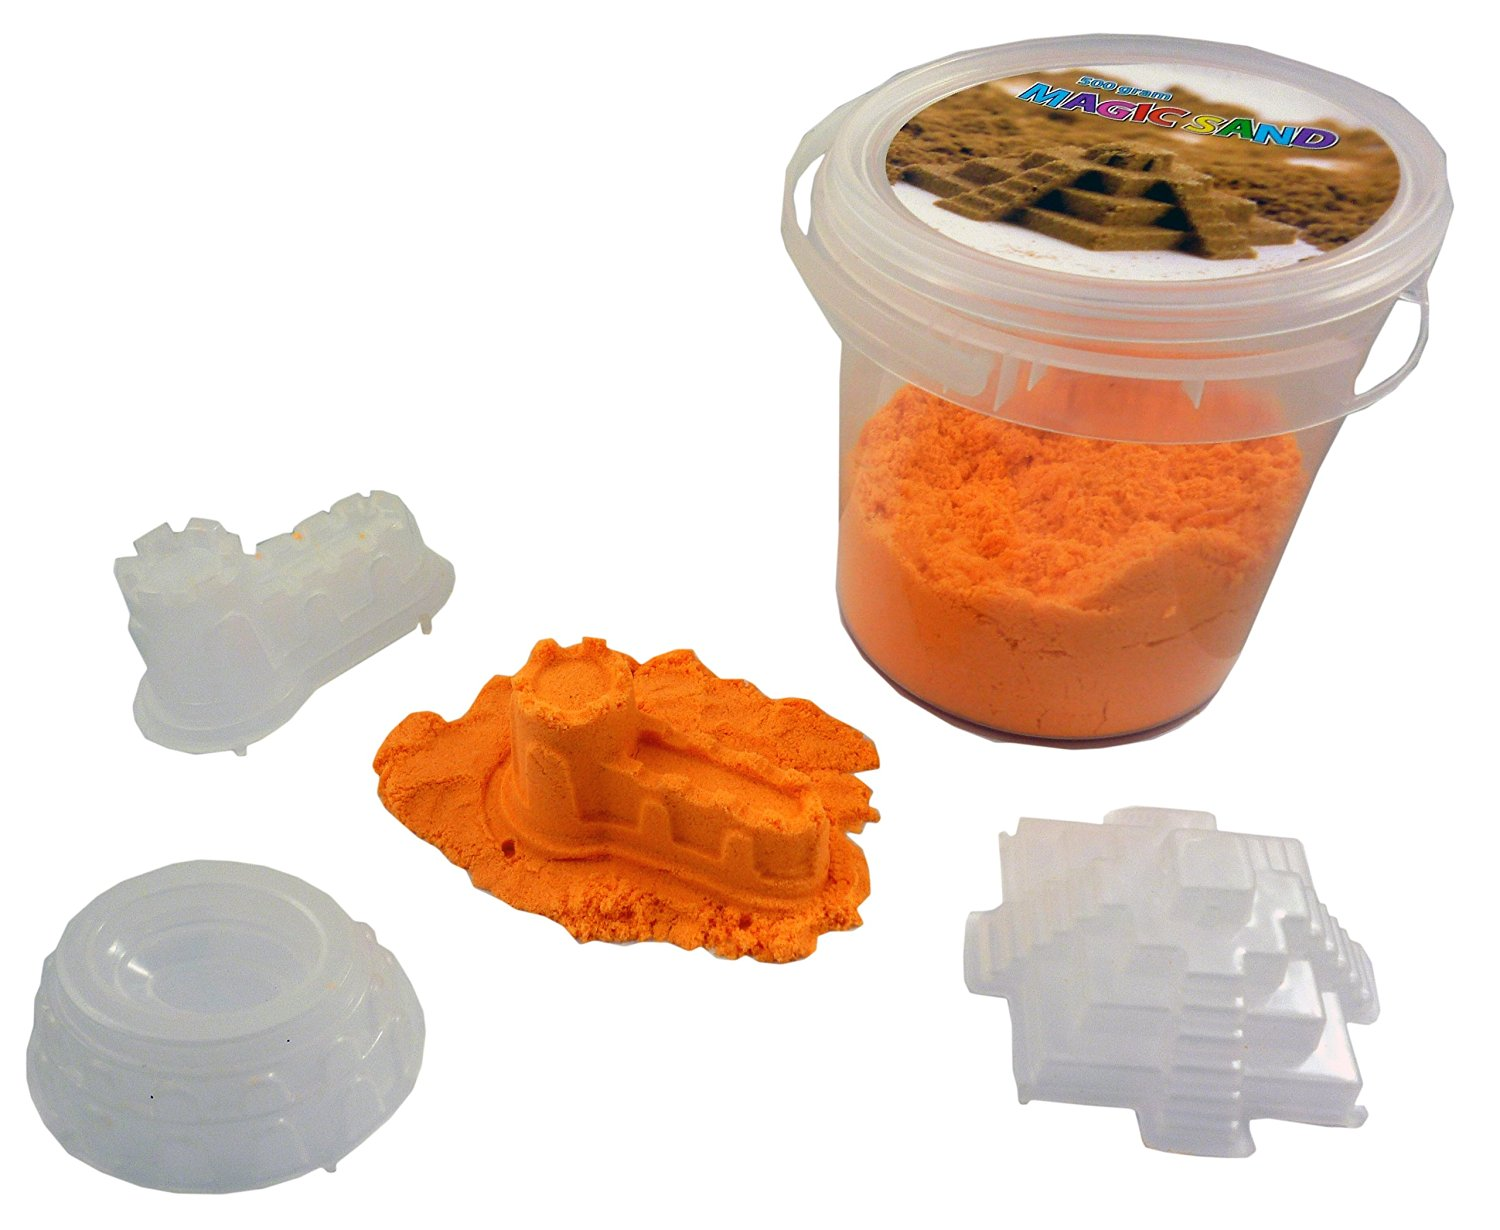 ORANGE Magic Sand 500g With 3 Castle Moulds- Sculpture, Mould and Play [Toy]